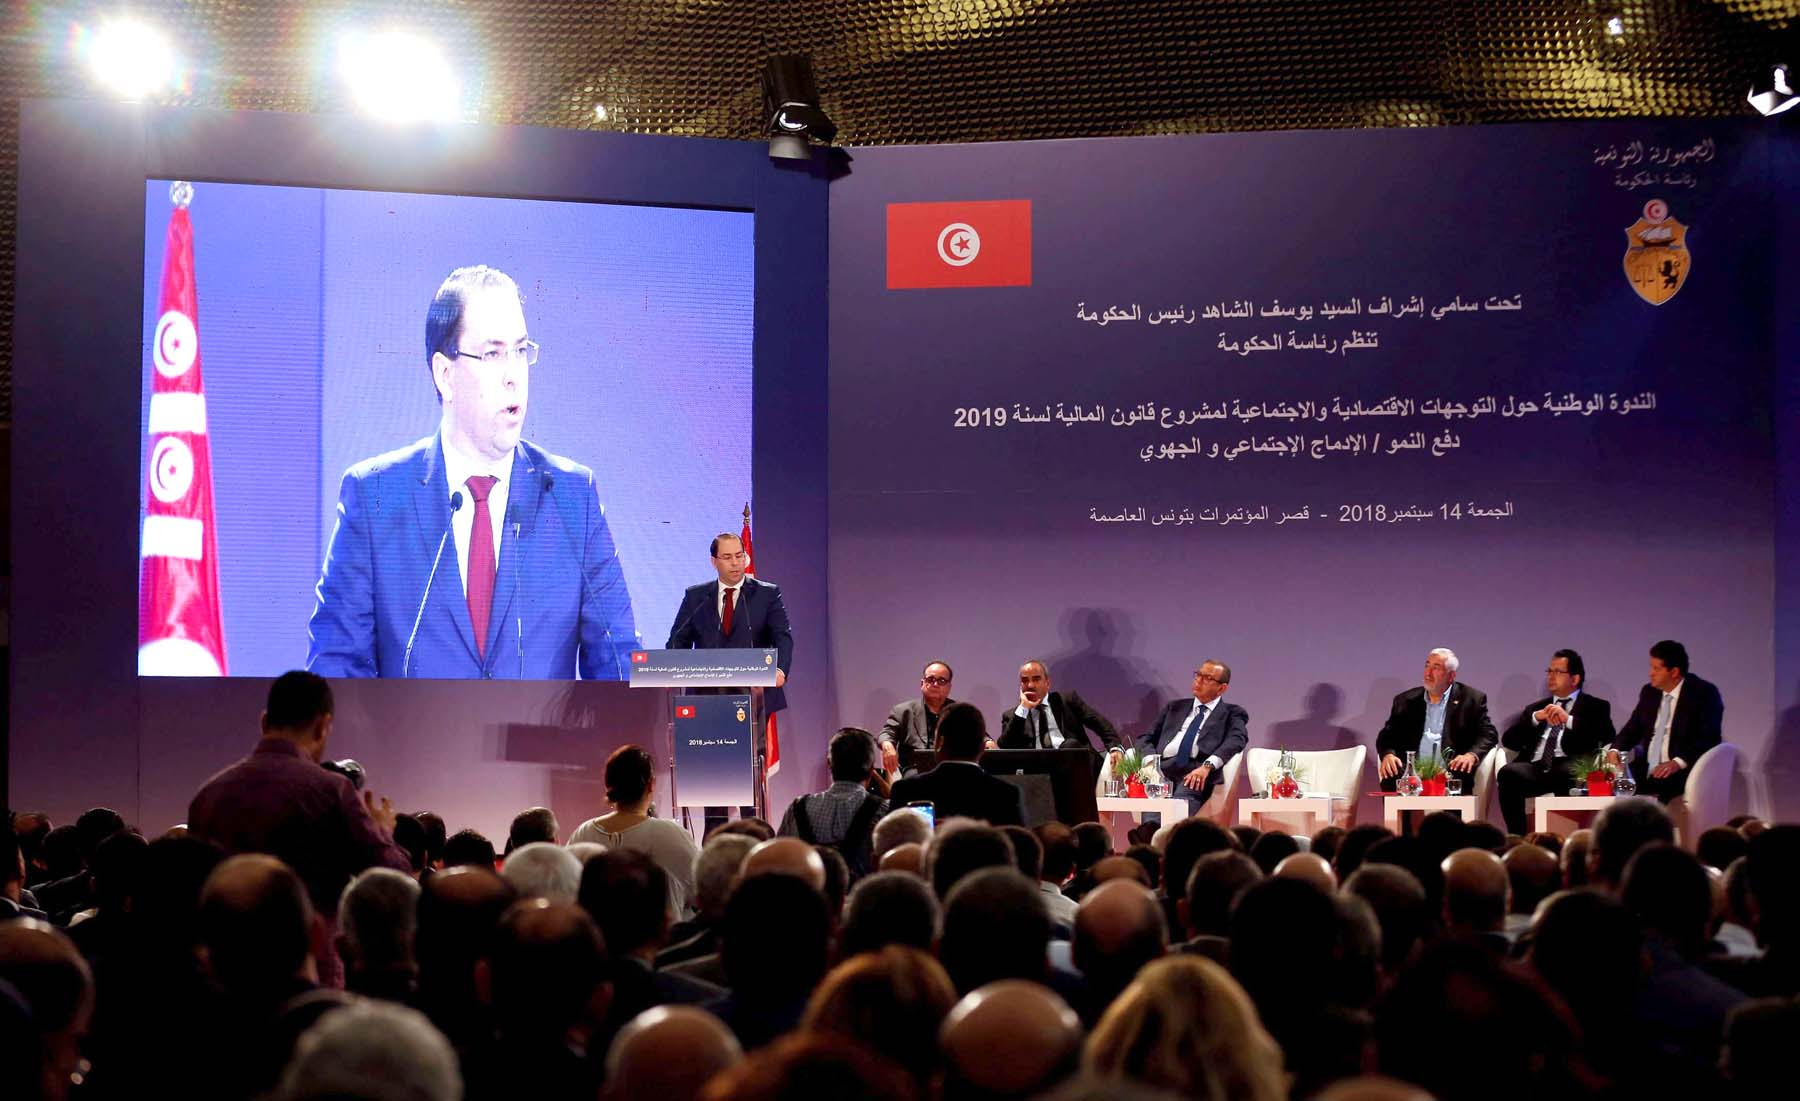 Tunisia's Prime Minister Youssef Chahed speaks during a national conference over 2019 budget in Tunis,  on September 14.                                                                                (Reuters)